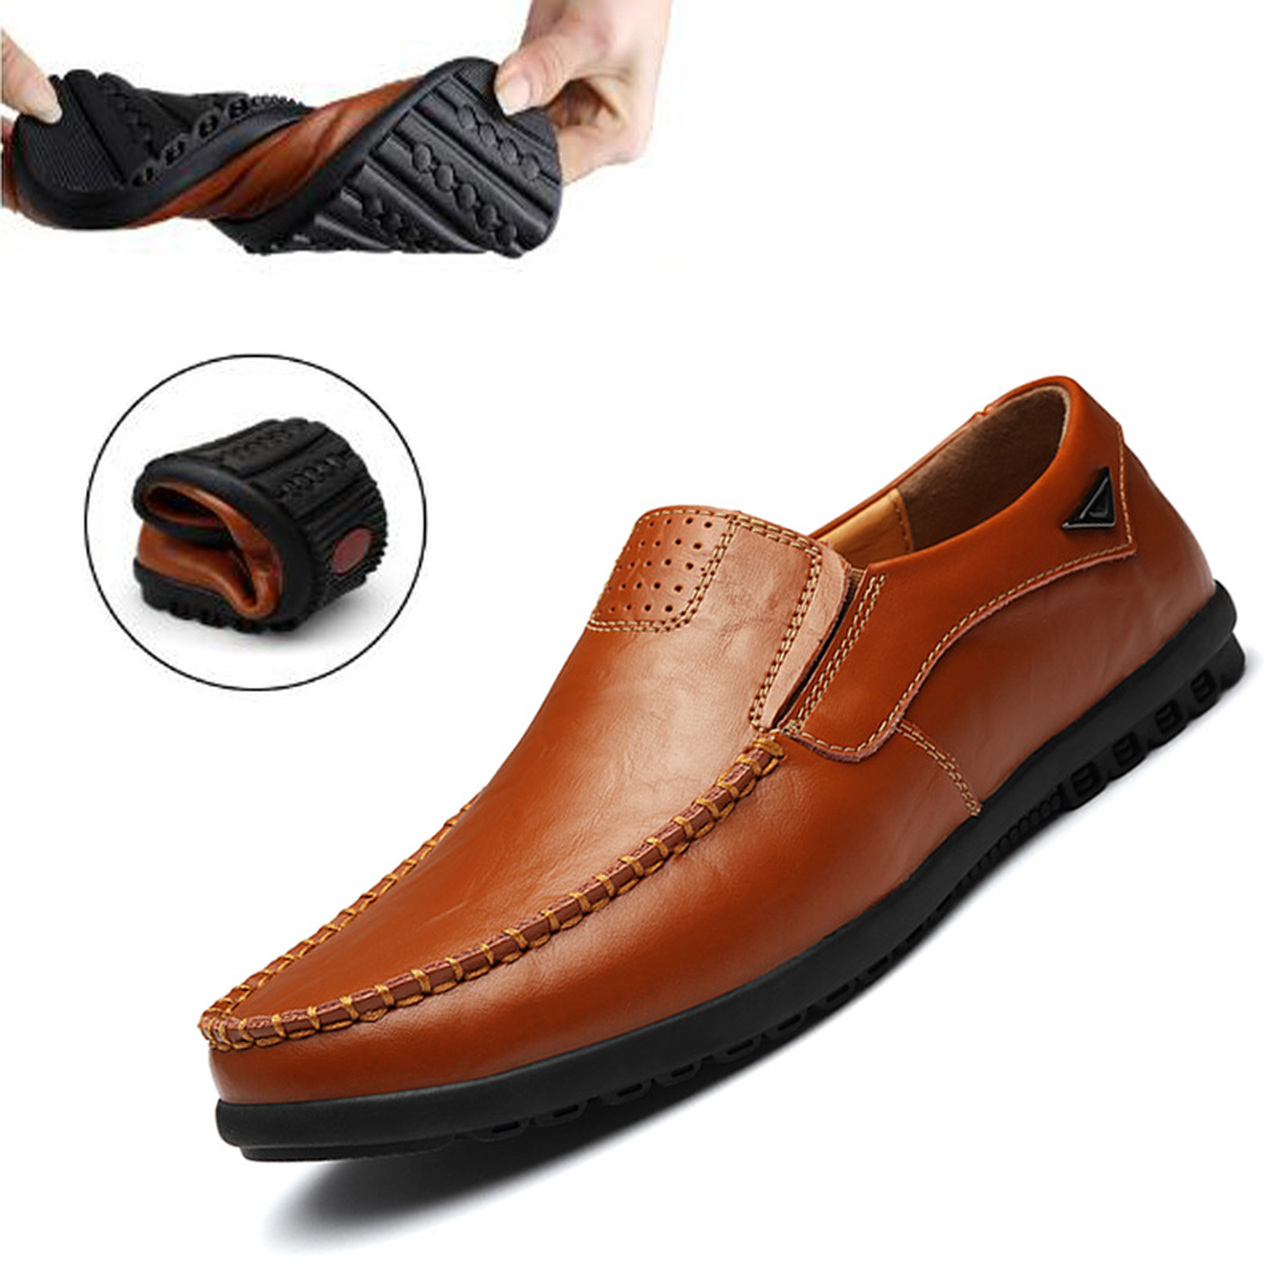 Italian Men Casual Shoes Summer Genuine Leather Loafers Moccasins Breathable Driving,Black,12